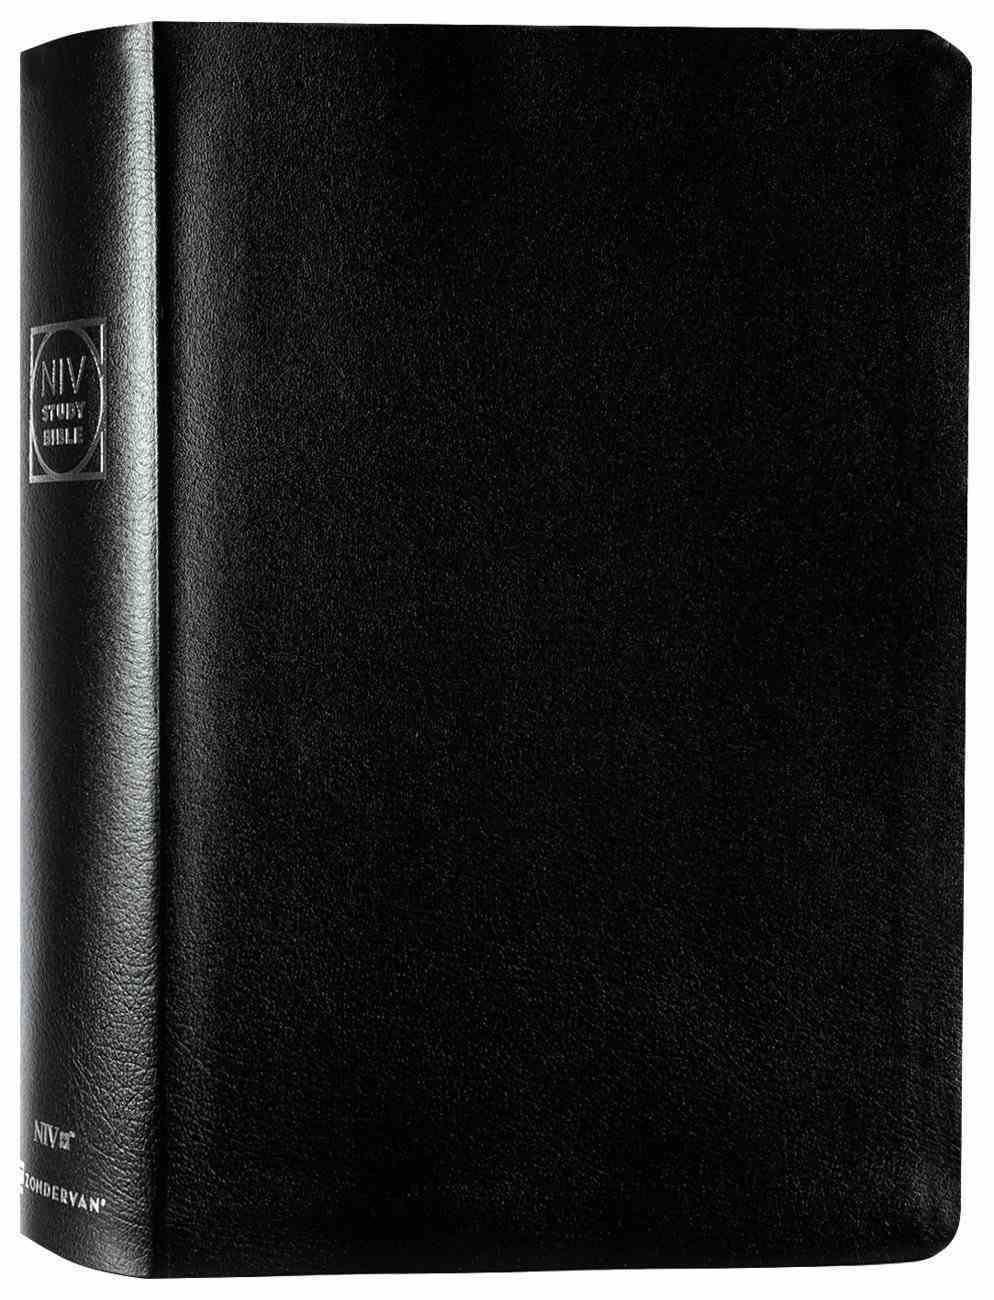 NIV Study Bible Black Indexed (Red Letter Edition) Fully Revised Edition (2020) Bonded Leather